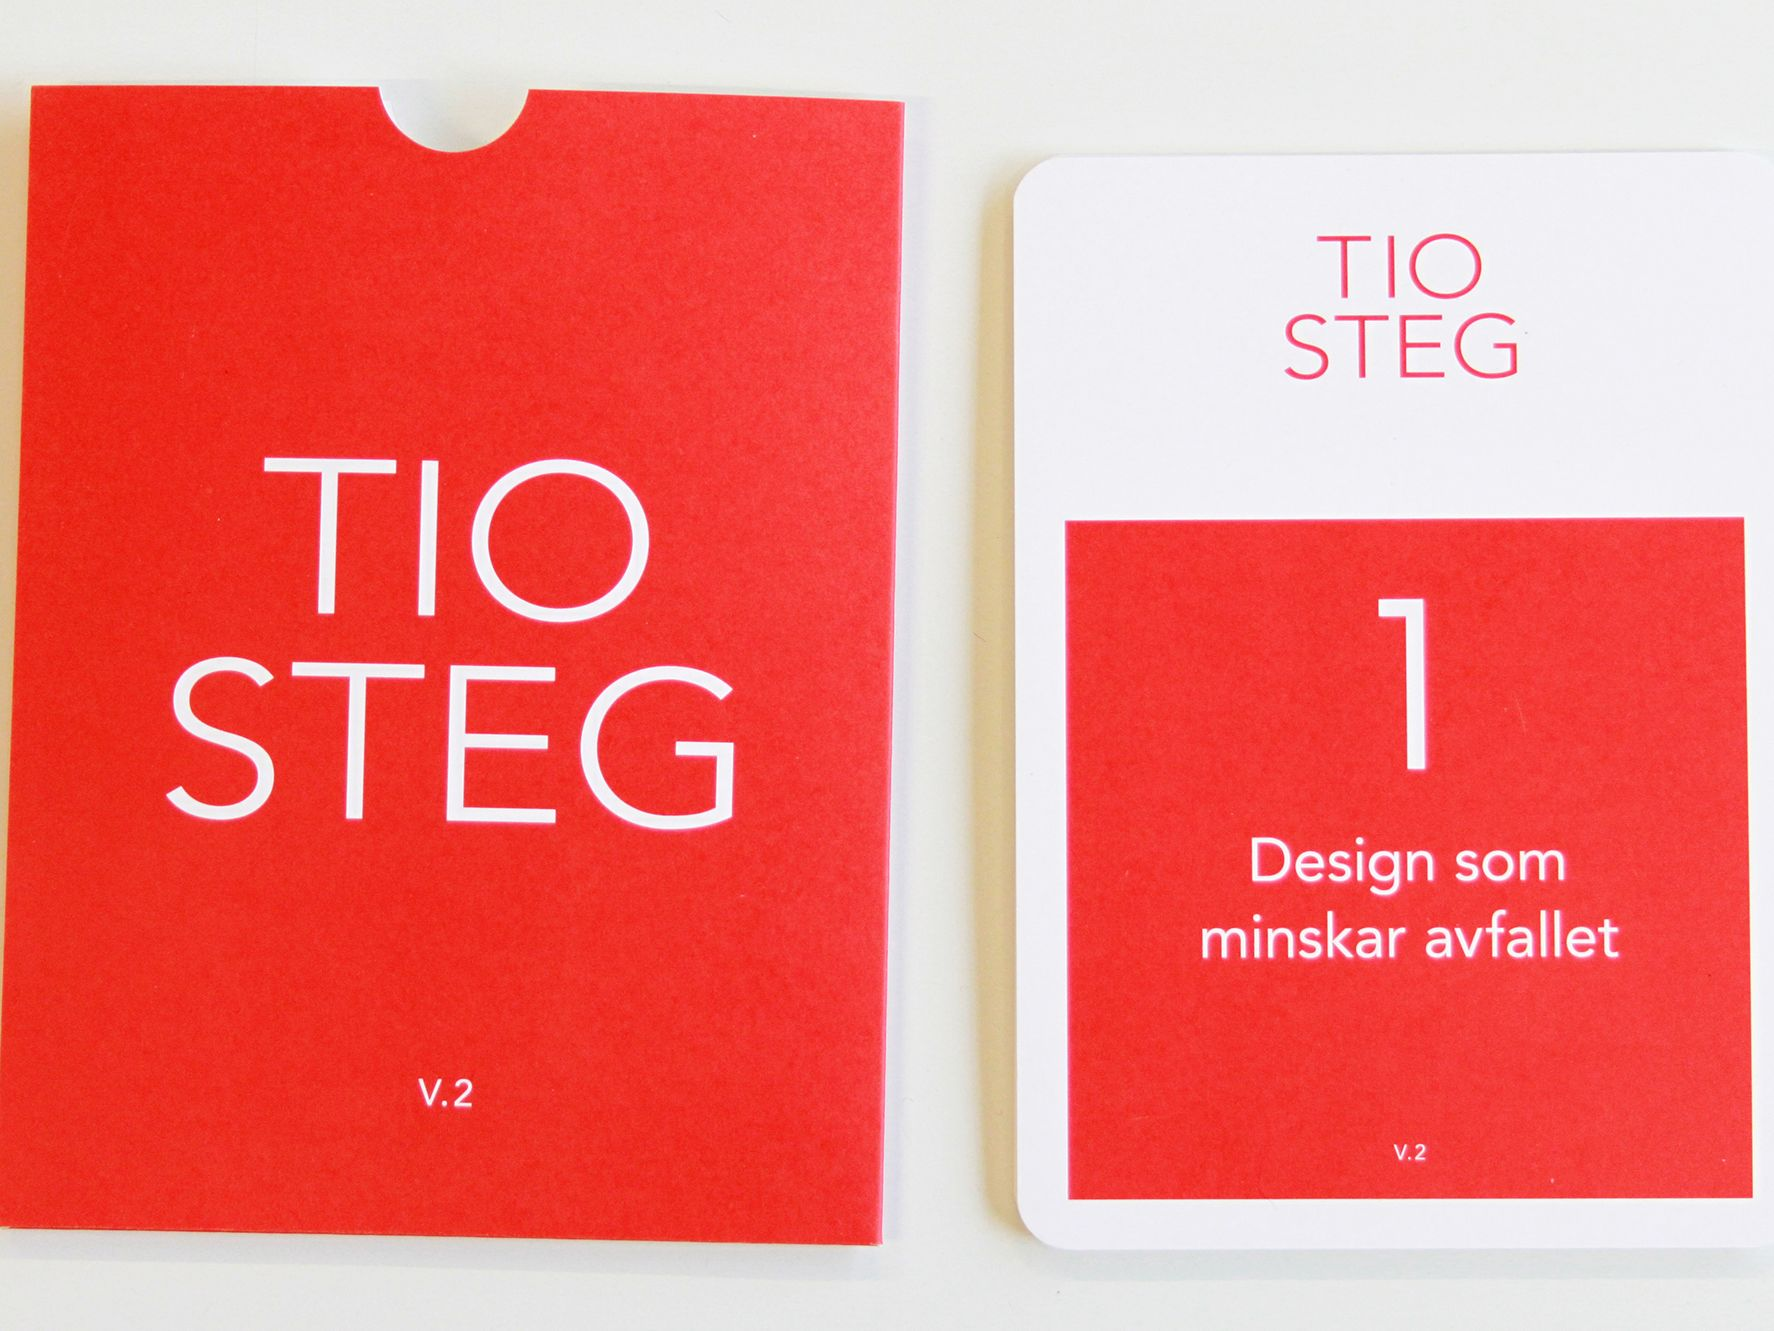 Swedish version of the design strategies card game design by the Centre for Circular Design.